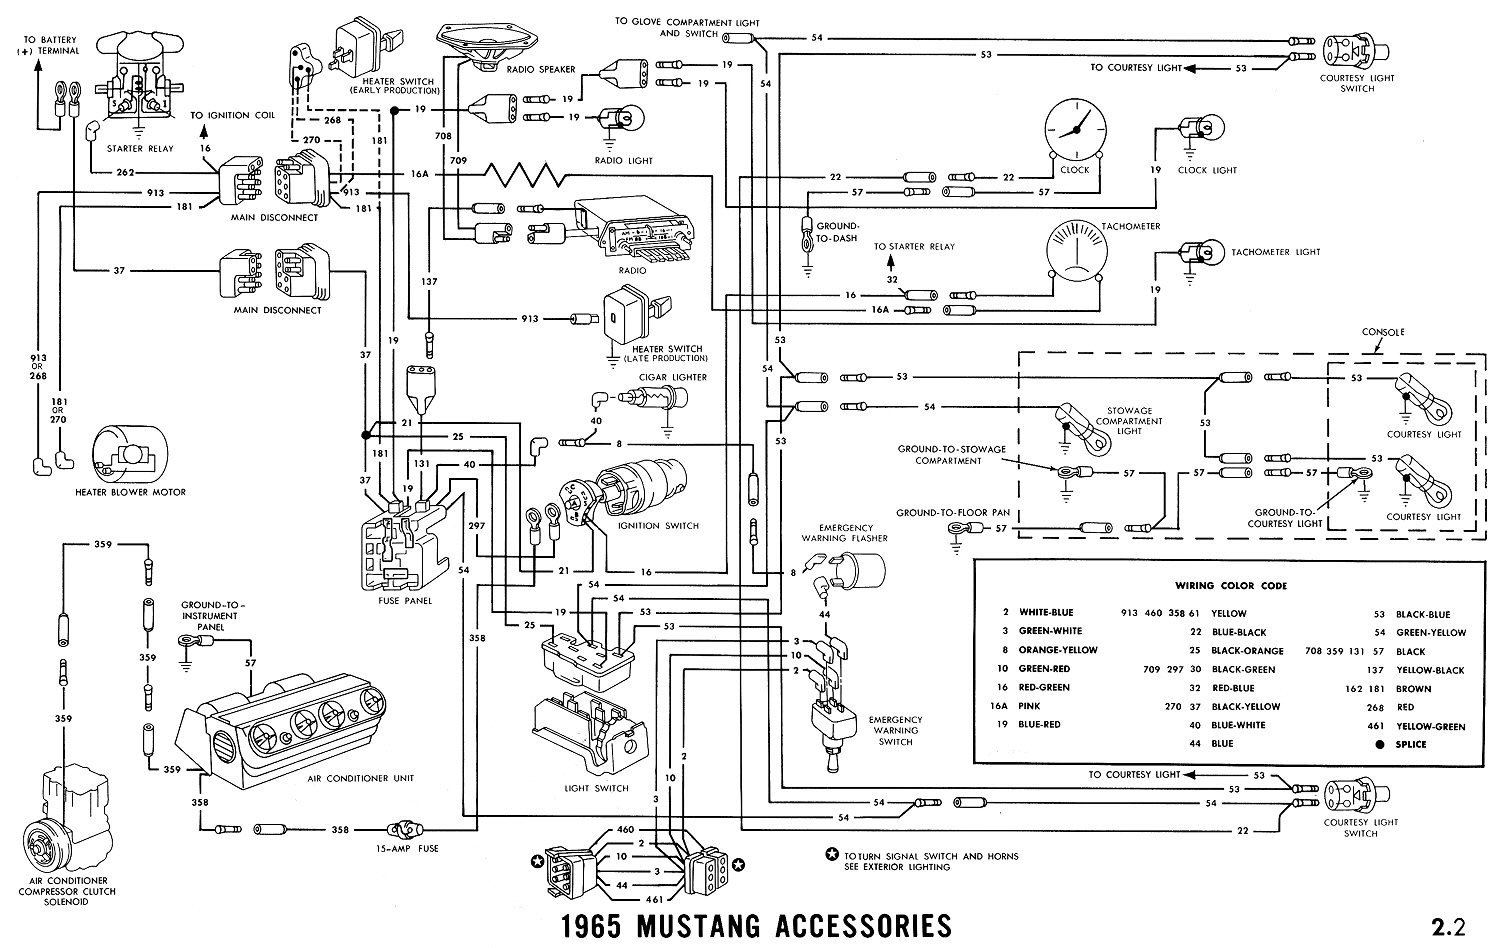 1965i 2015 mustang wiring diagram schematic mustang 2015 \u2022 free wiring 2000 C5 Corvette Wiring Diagram at gsmx.co